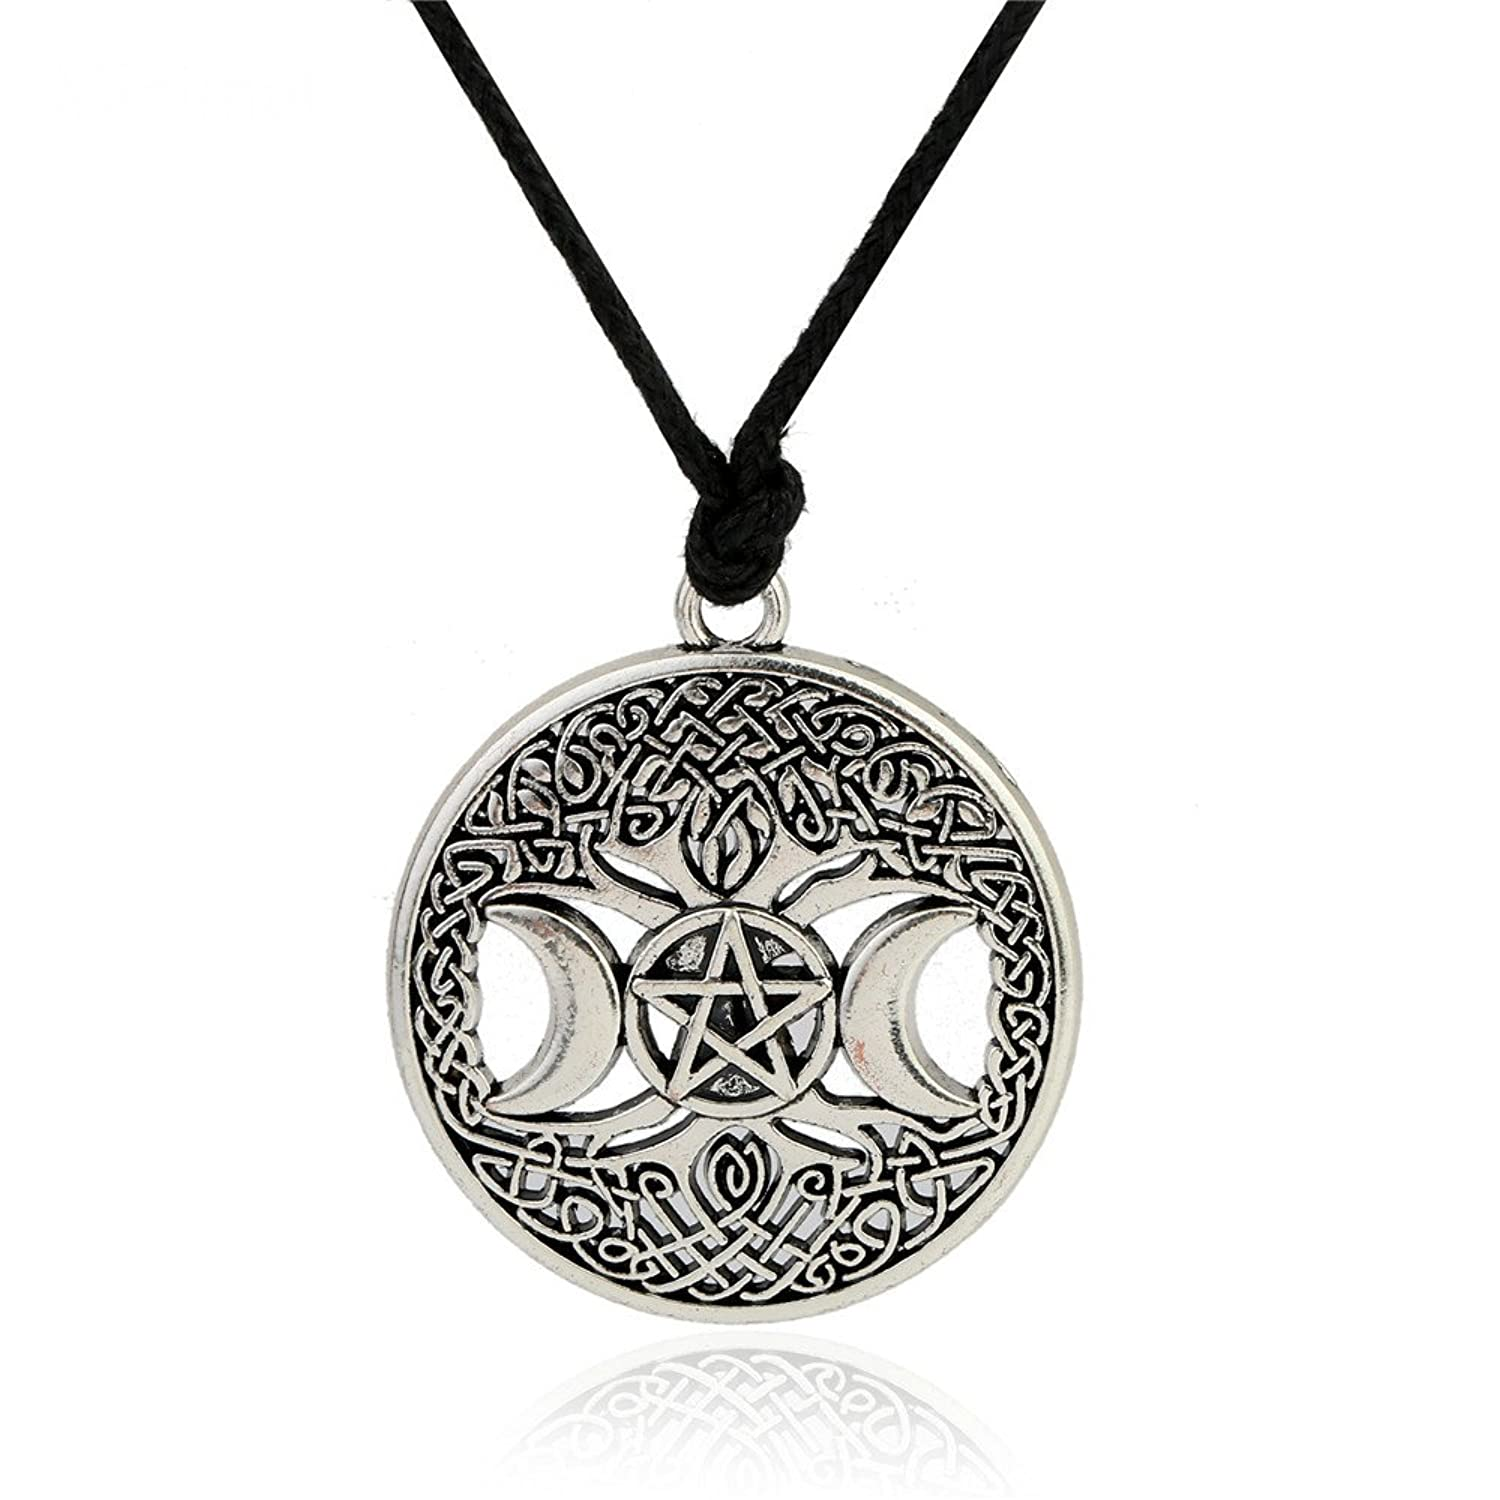 Triple Moon Goddess Necklace Pentacle Pentagram Tree Of Life Talisman Pendant Wiccan Pagan Jewelry Amulet